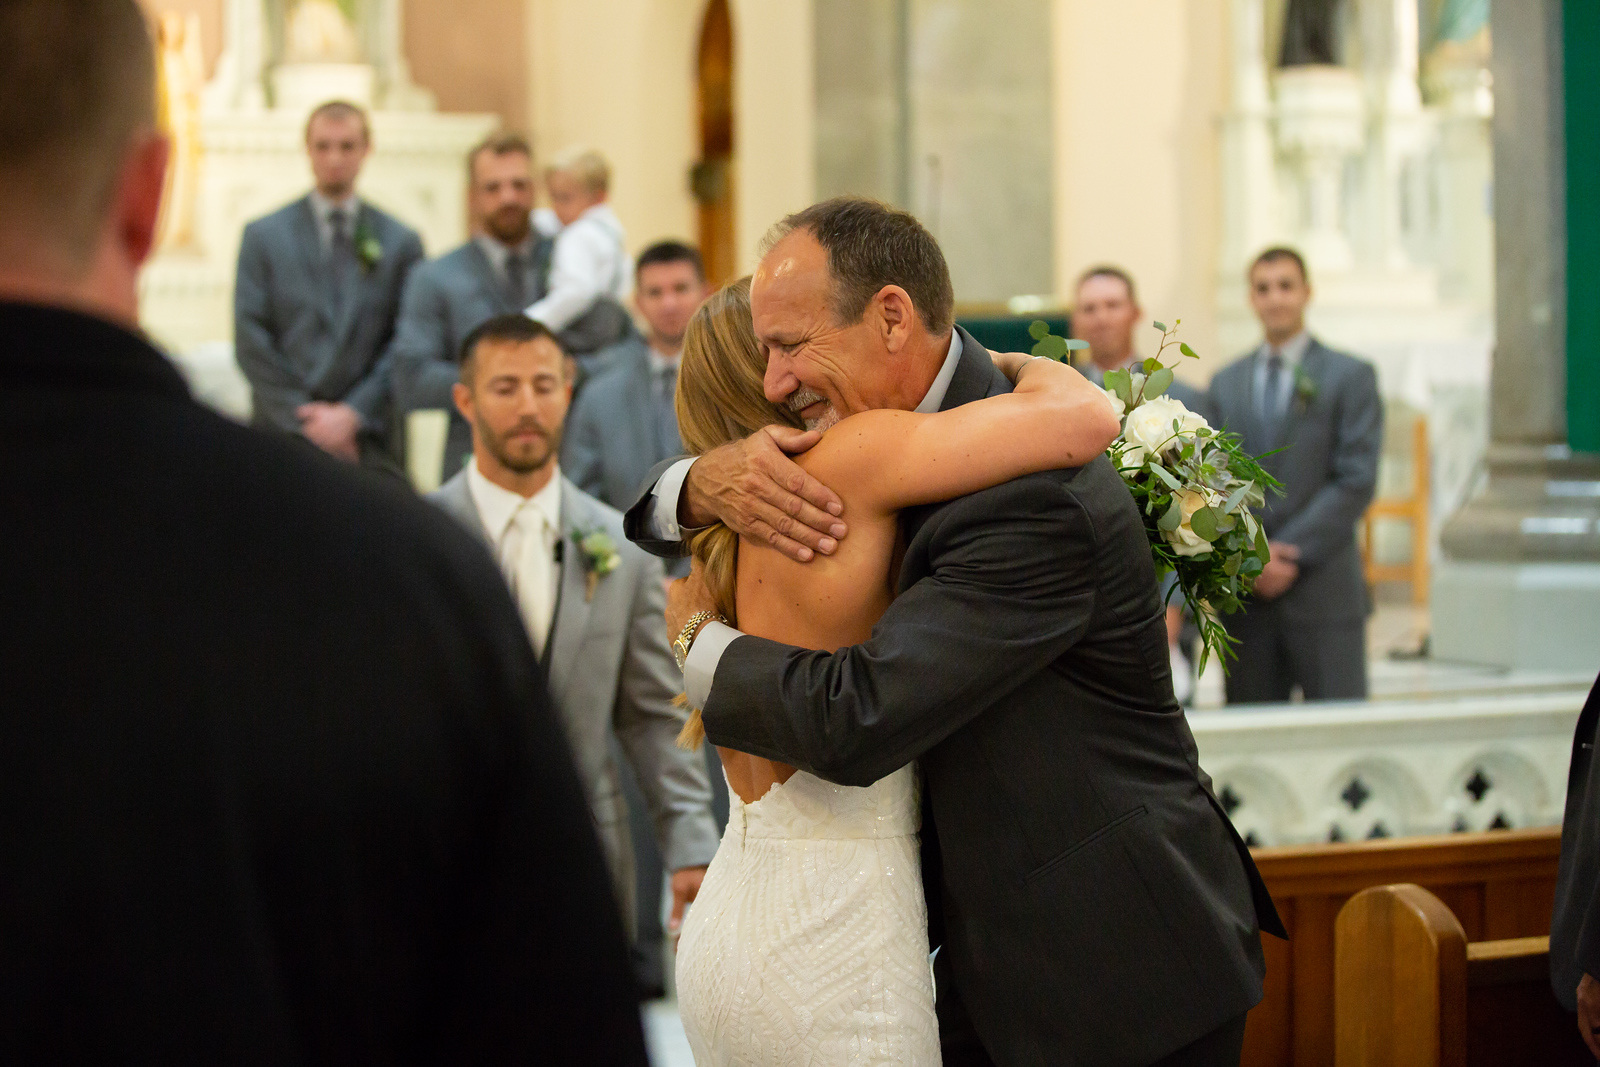 Father gives bride away